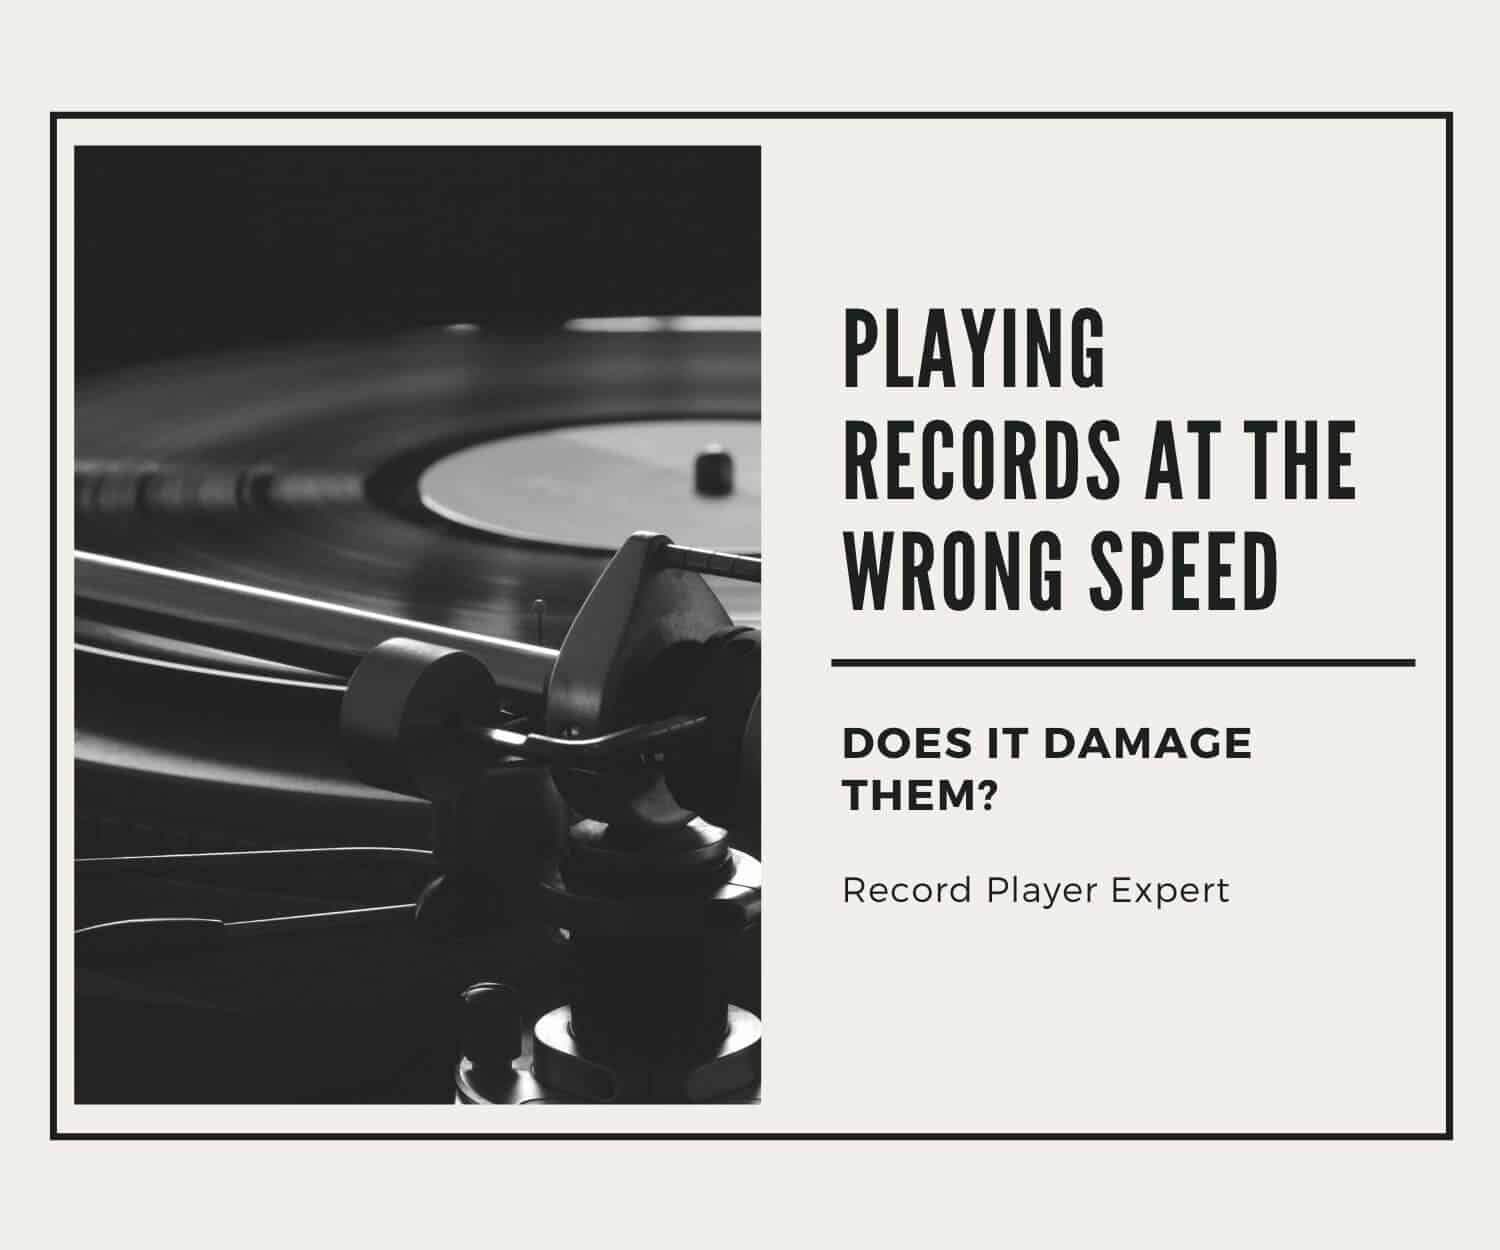 does playing vinyl records at the wrong speed damage them